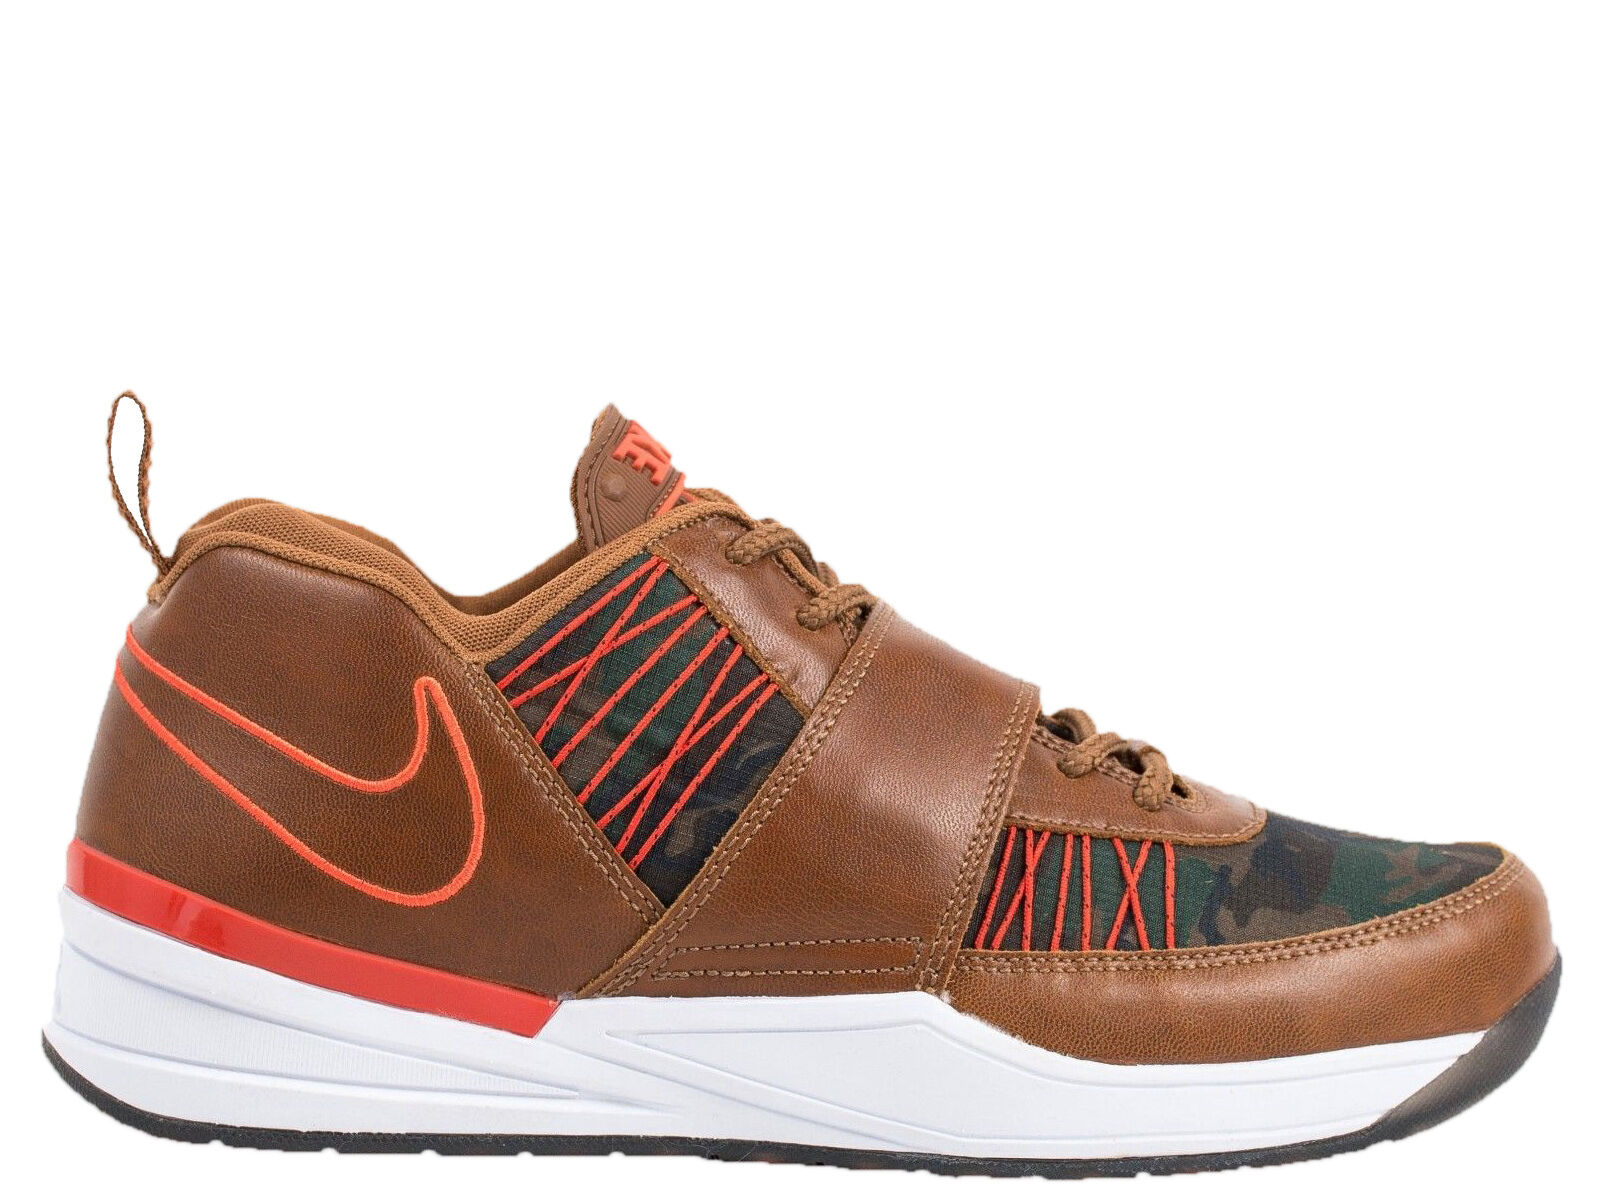 Brand New Nike Zoom Revis Men's Athletic Fashion Sneakers [599450 200]